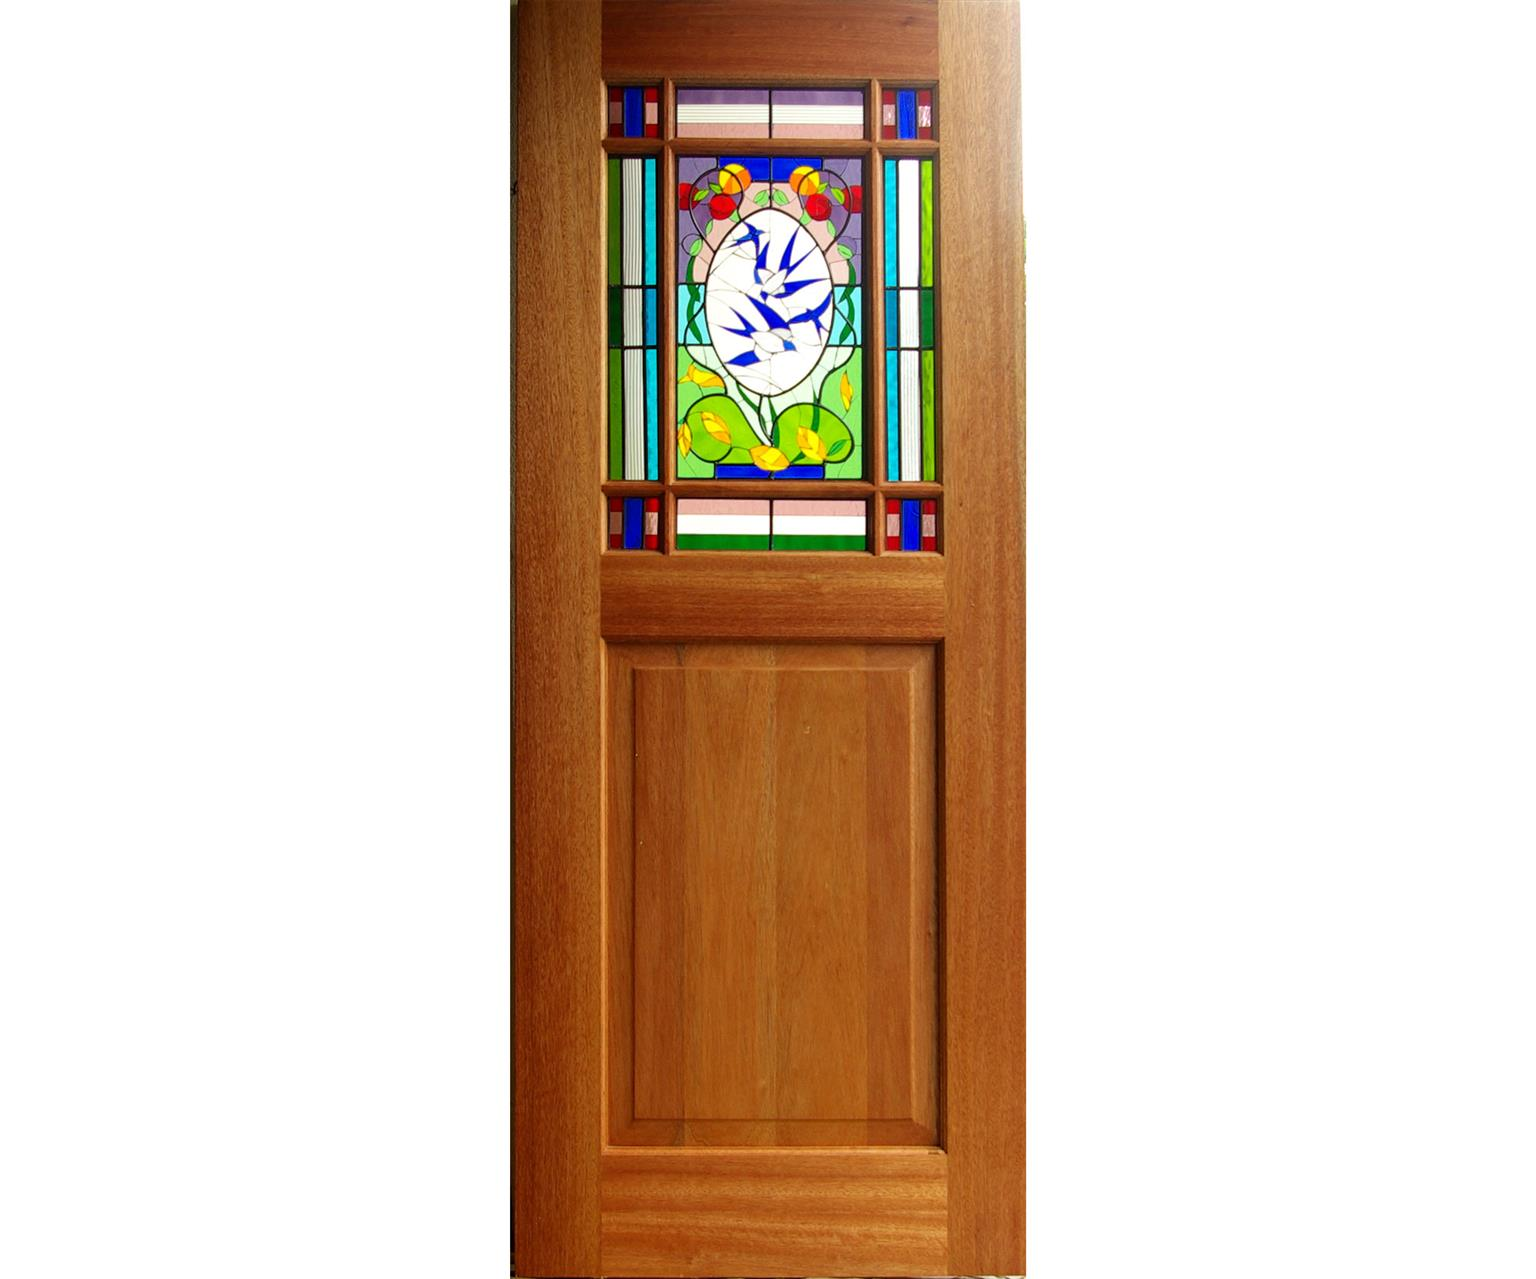 New Meranti door with stained glass panel; swallows theme